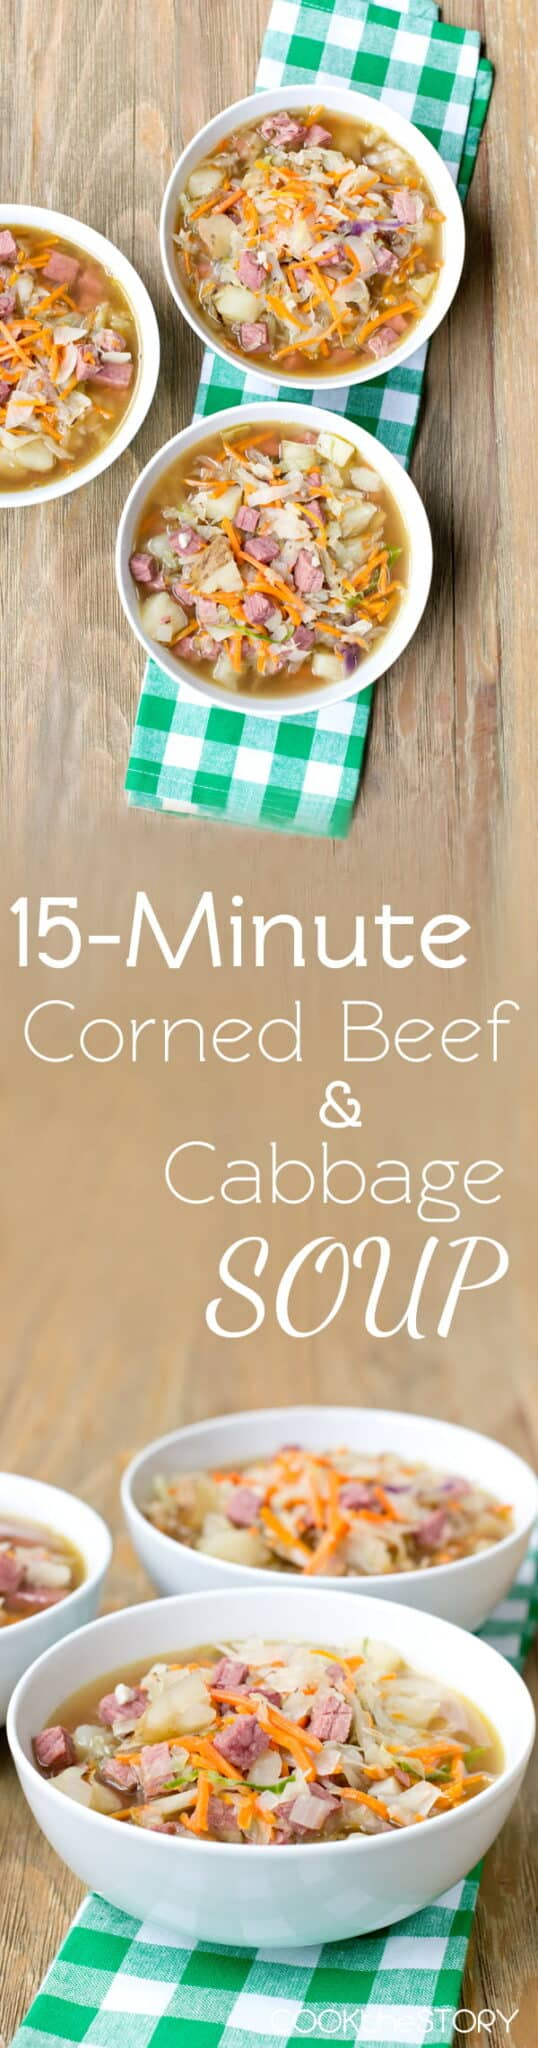 Easy Corned Beef and Cabbage Soup